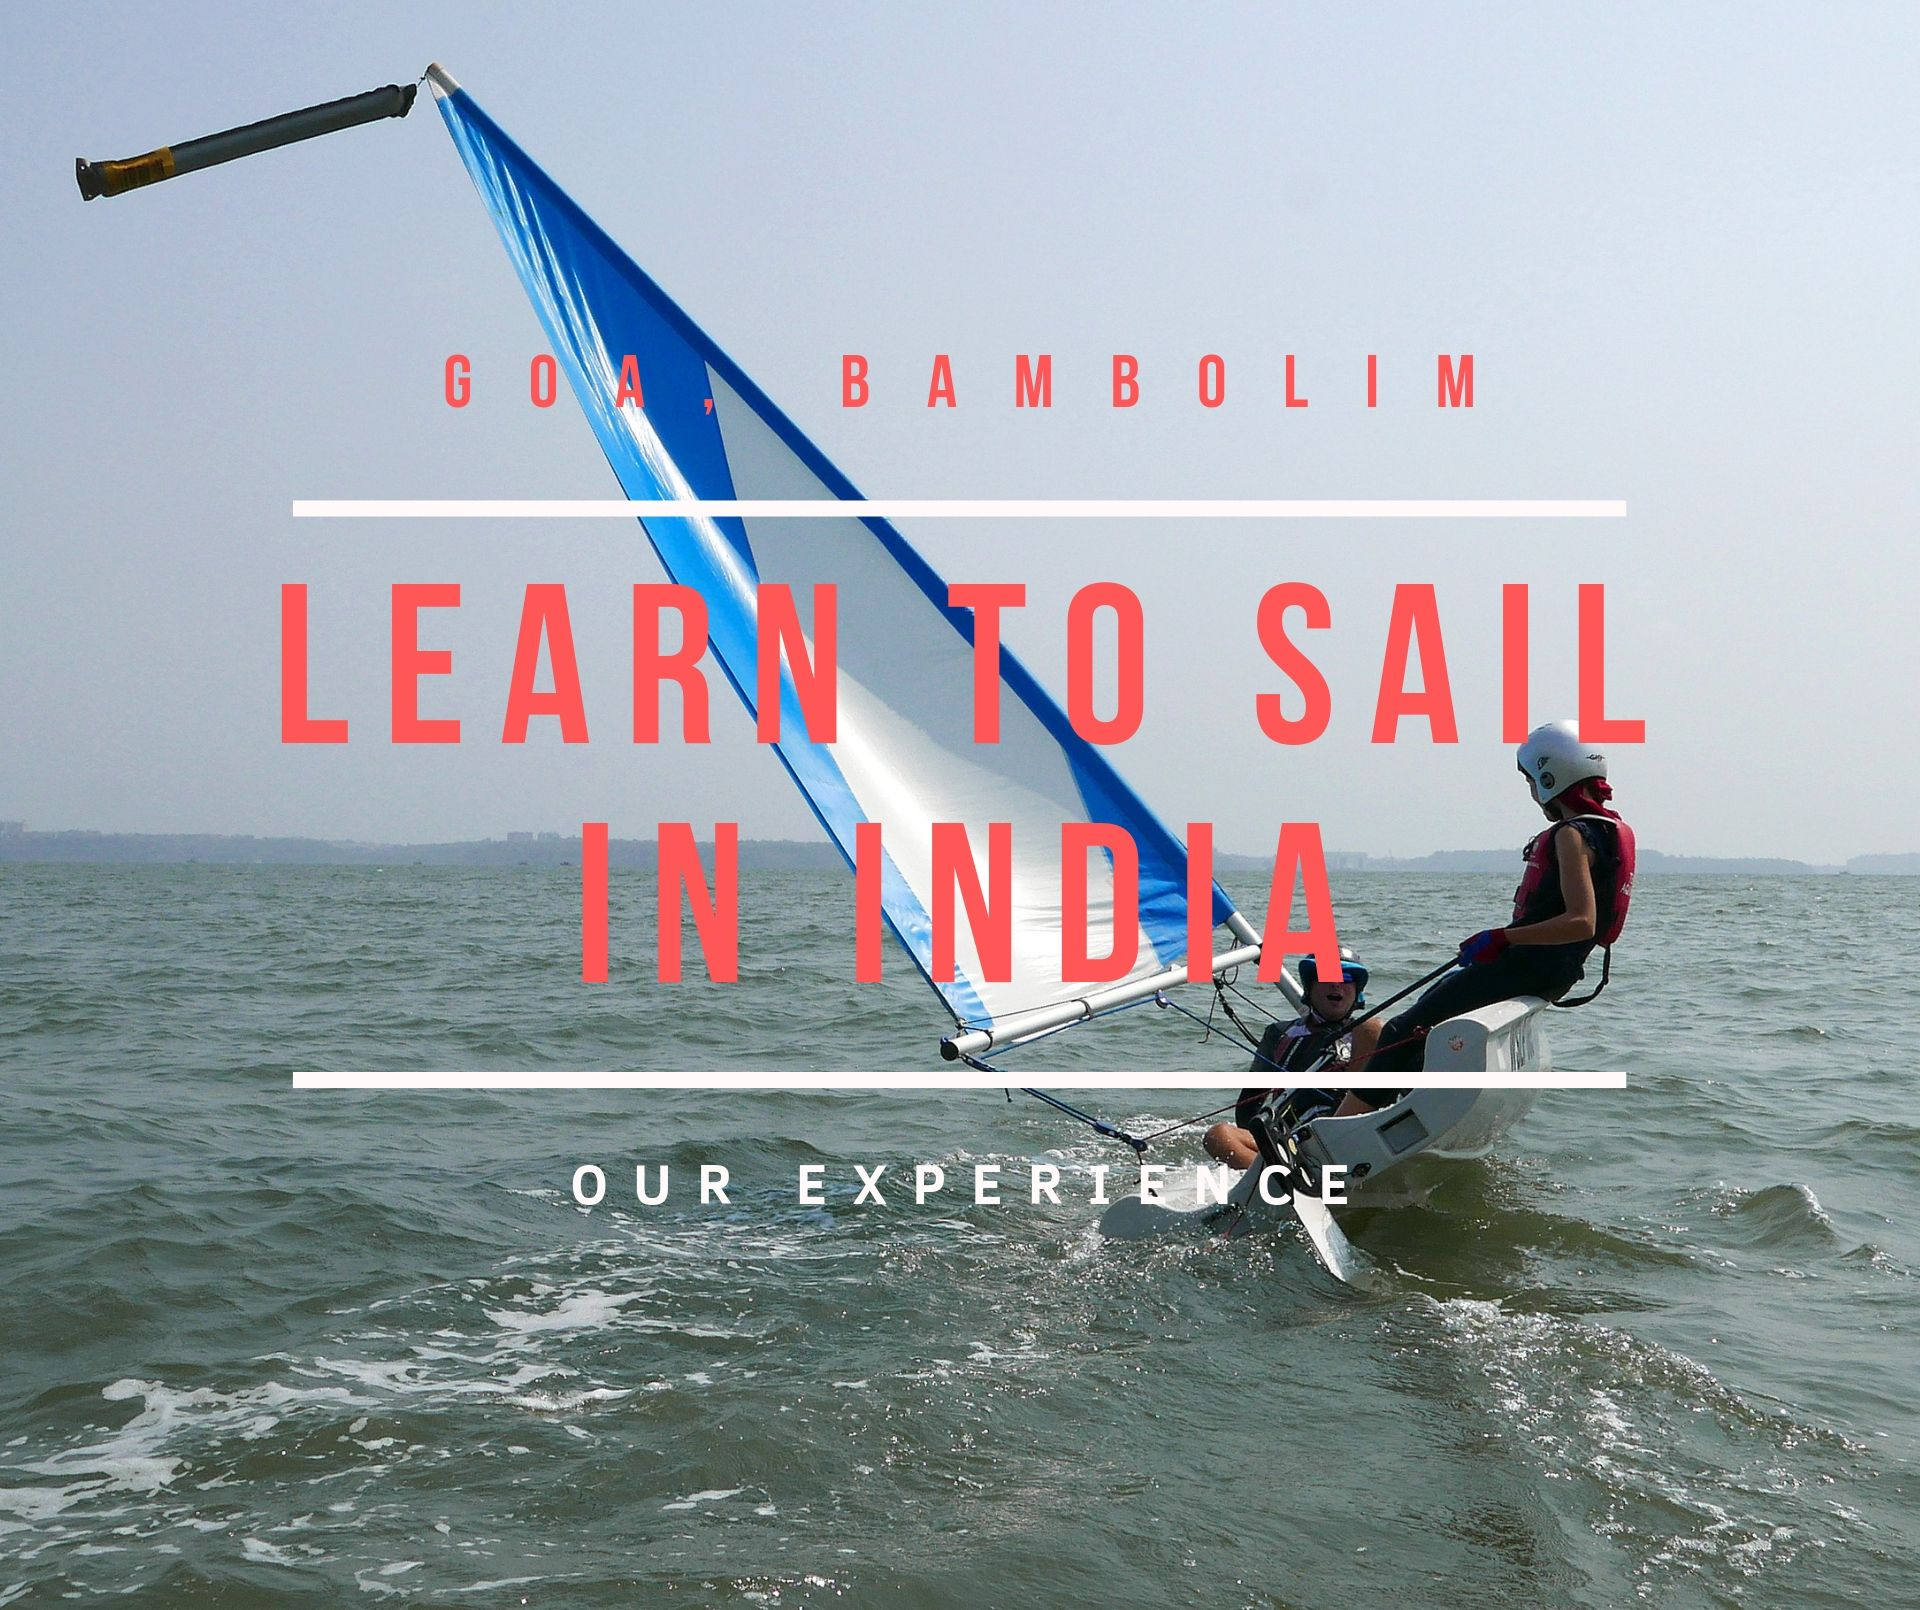 Sailing school in Goa